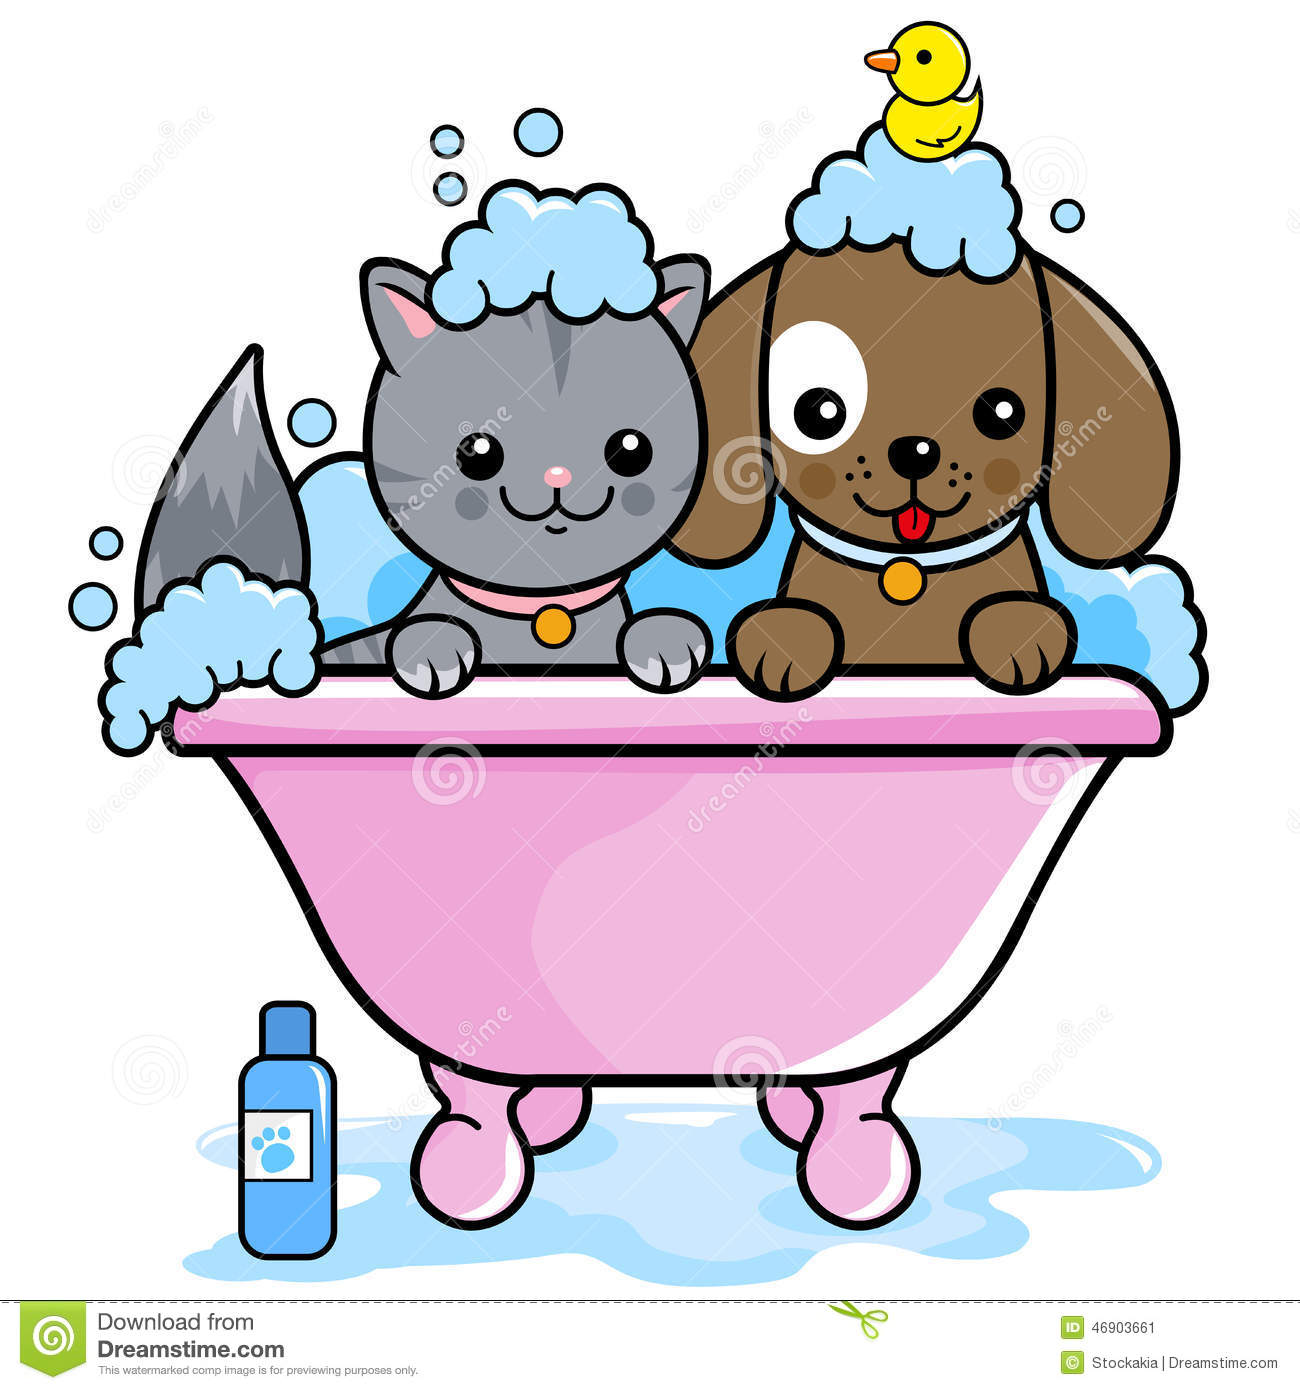 How To Give A Dog A Bath In The Tub